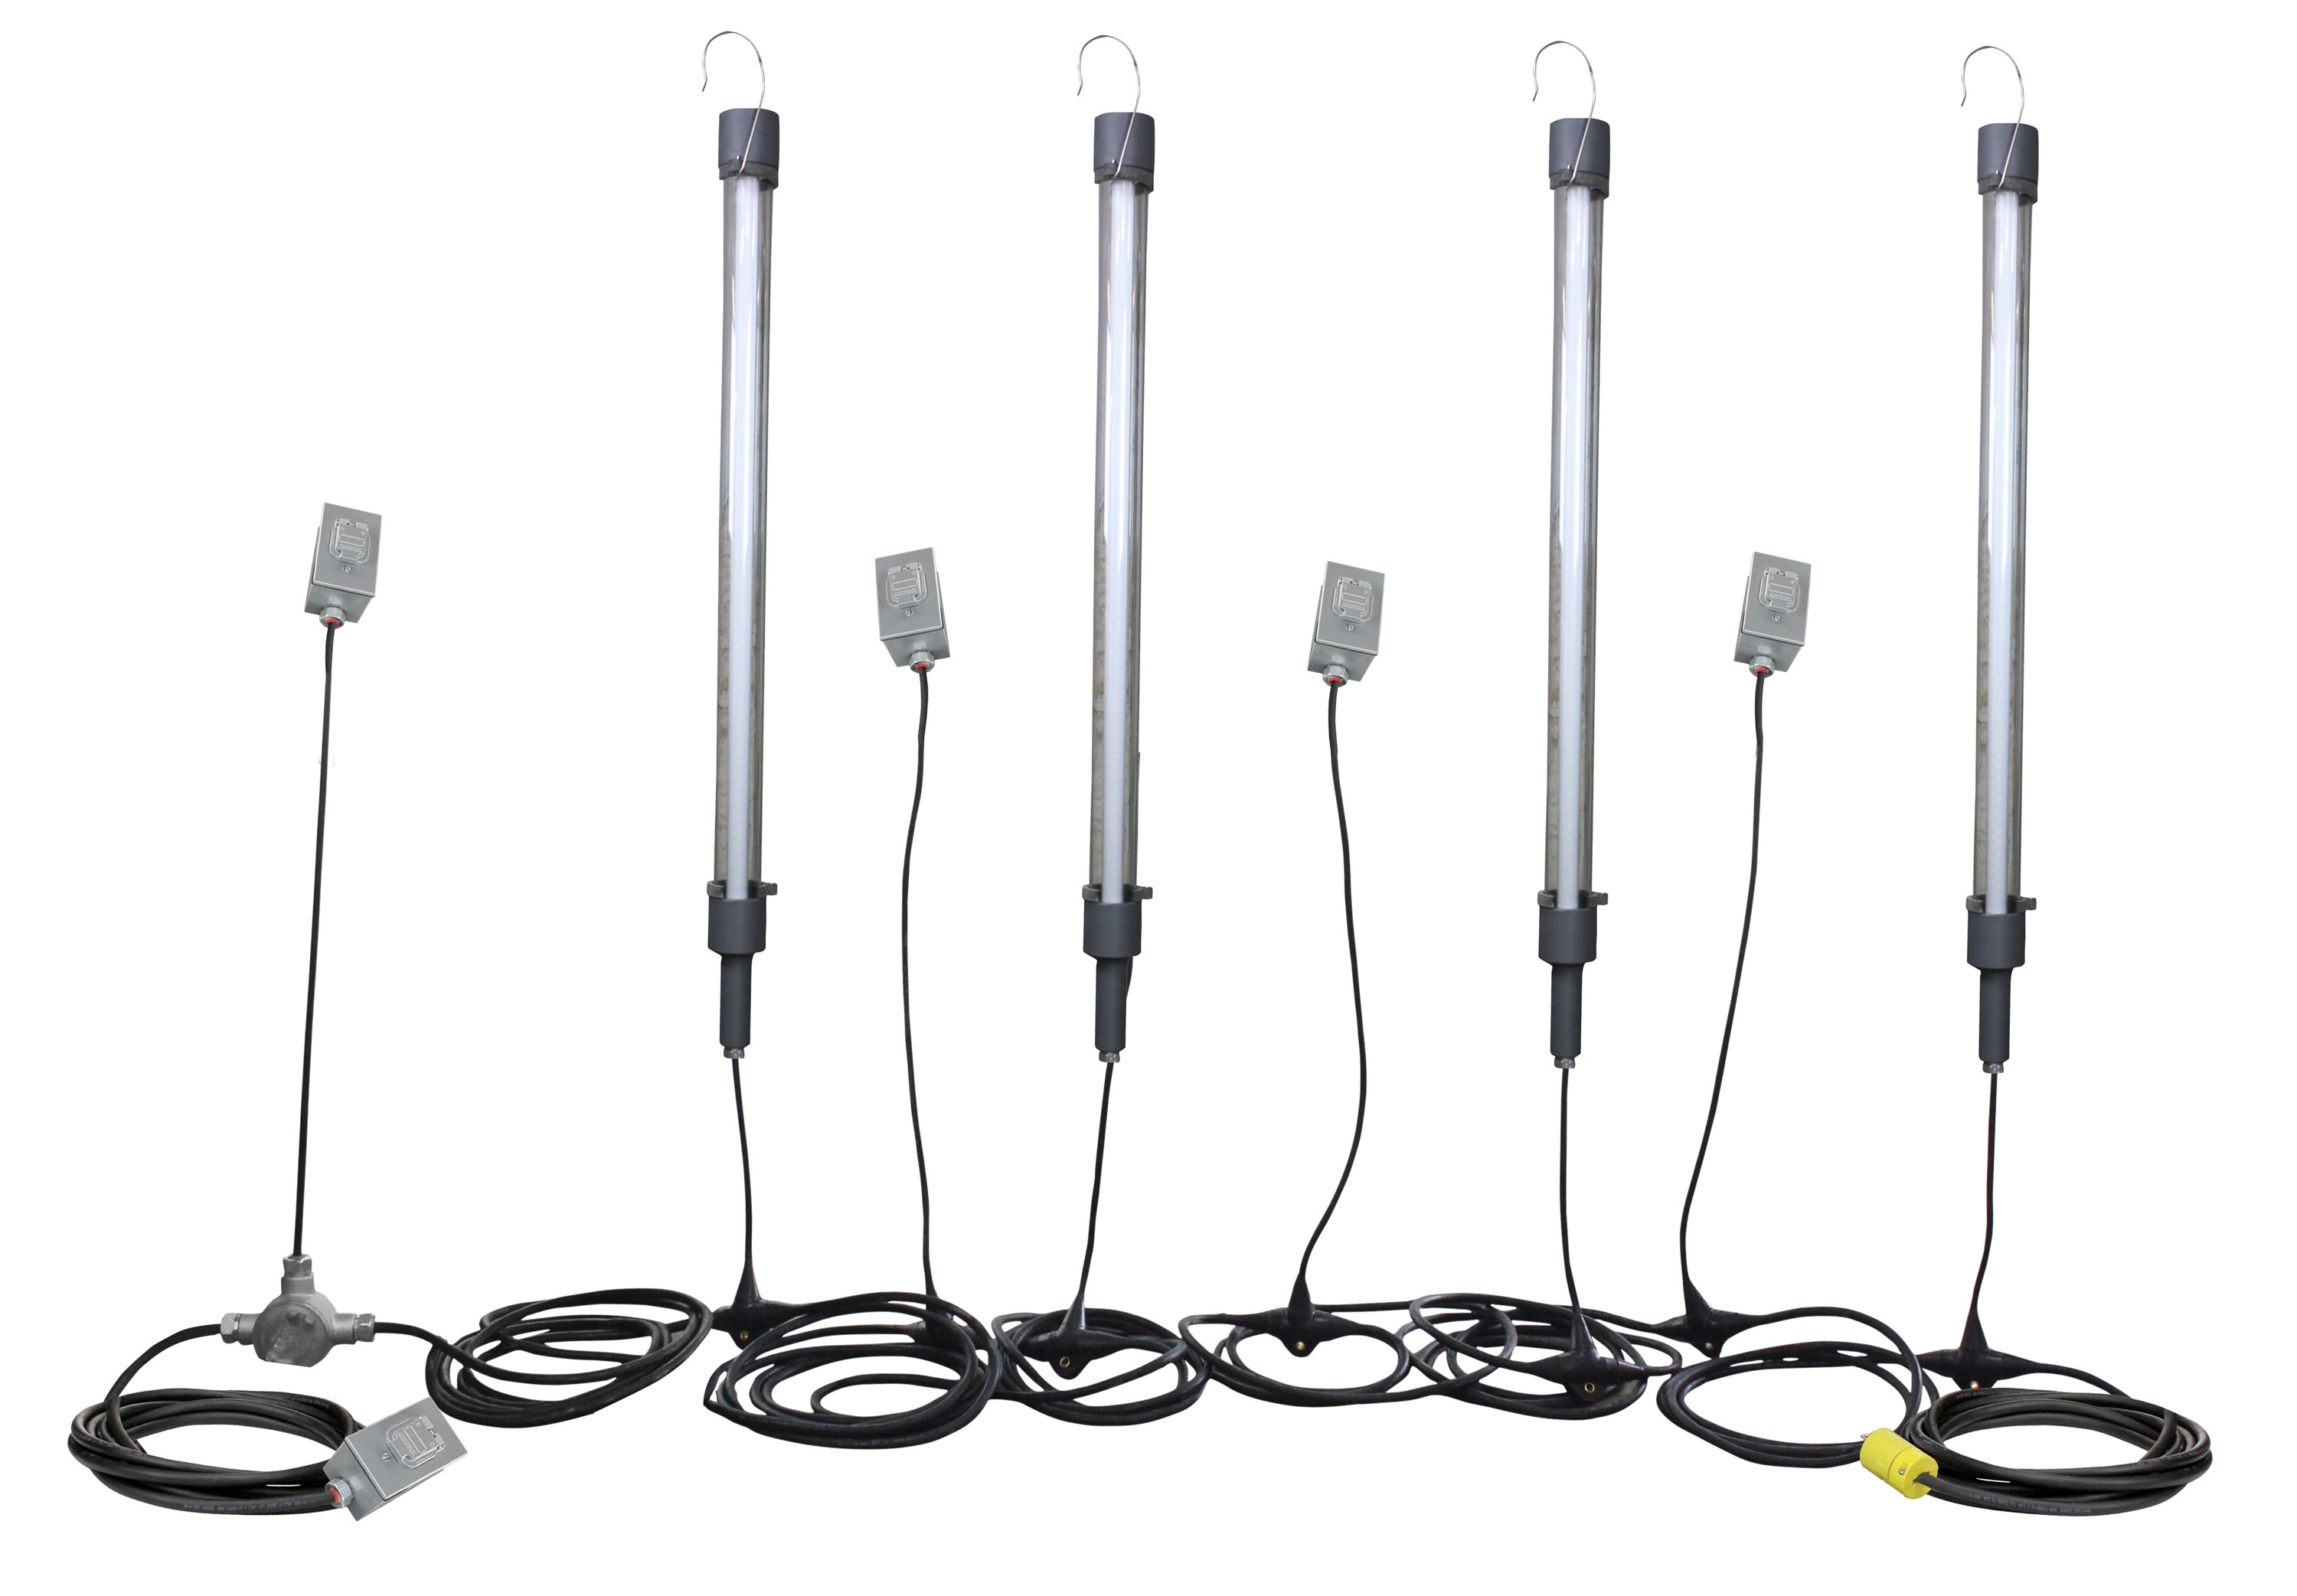 Prweb12921977 together with US7987863 together with 28W ULTRA SLIM FLUORESCENT UNDER CABI  NULS 28 also Faith Formation Ideas also Moldes. on daisy chain construction